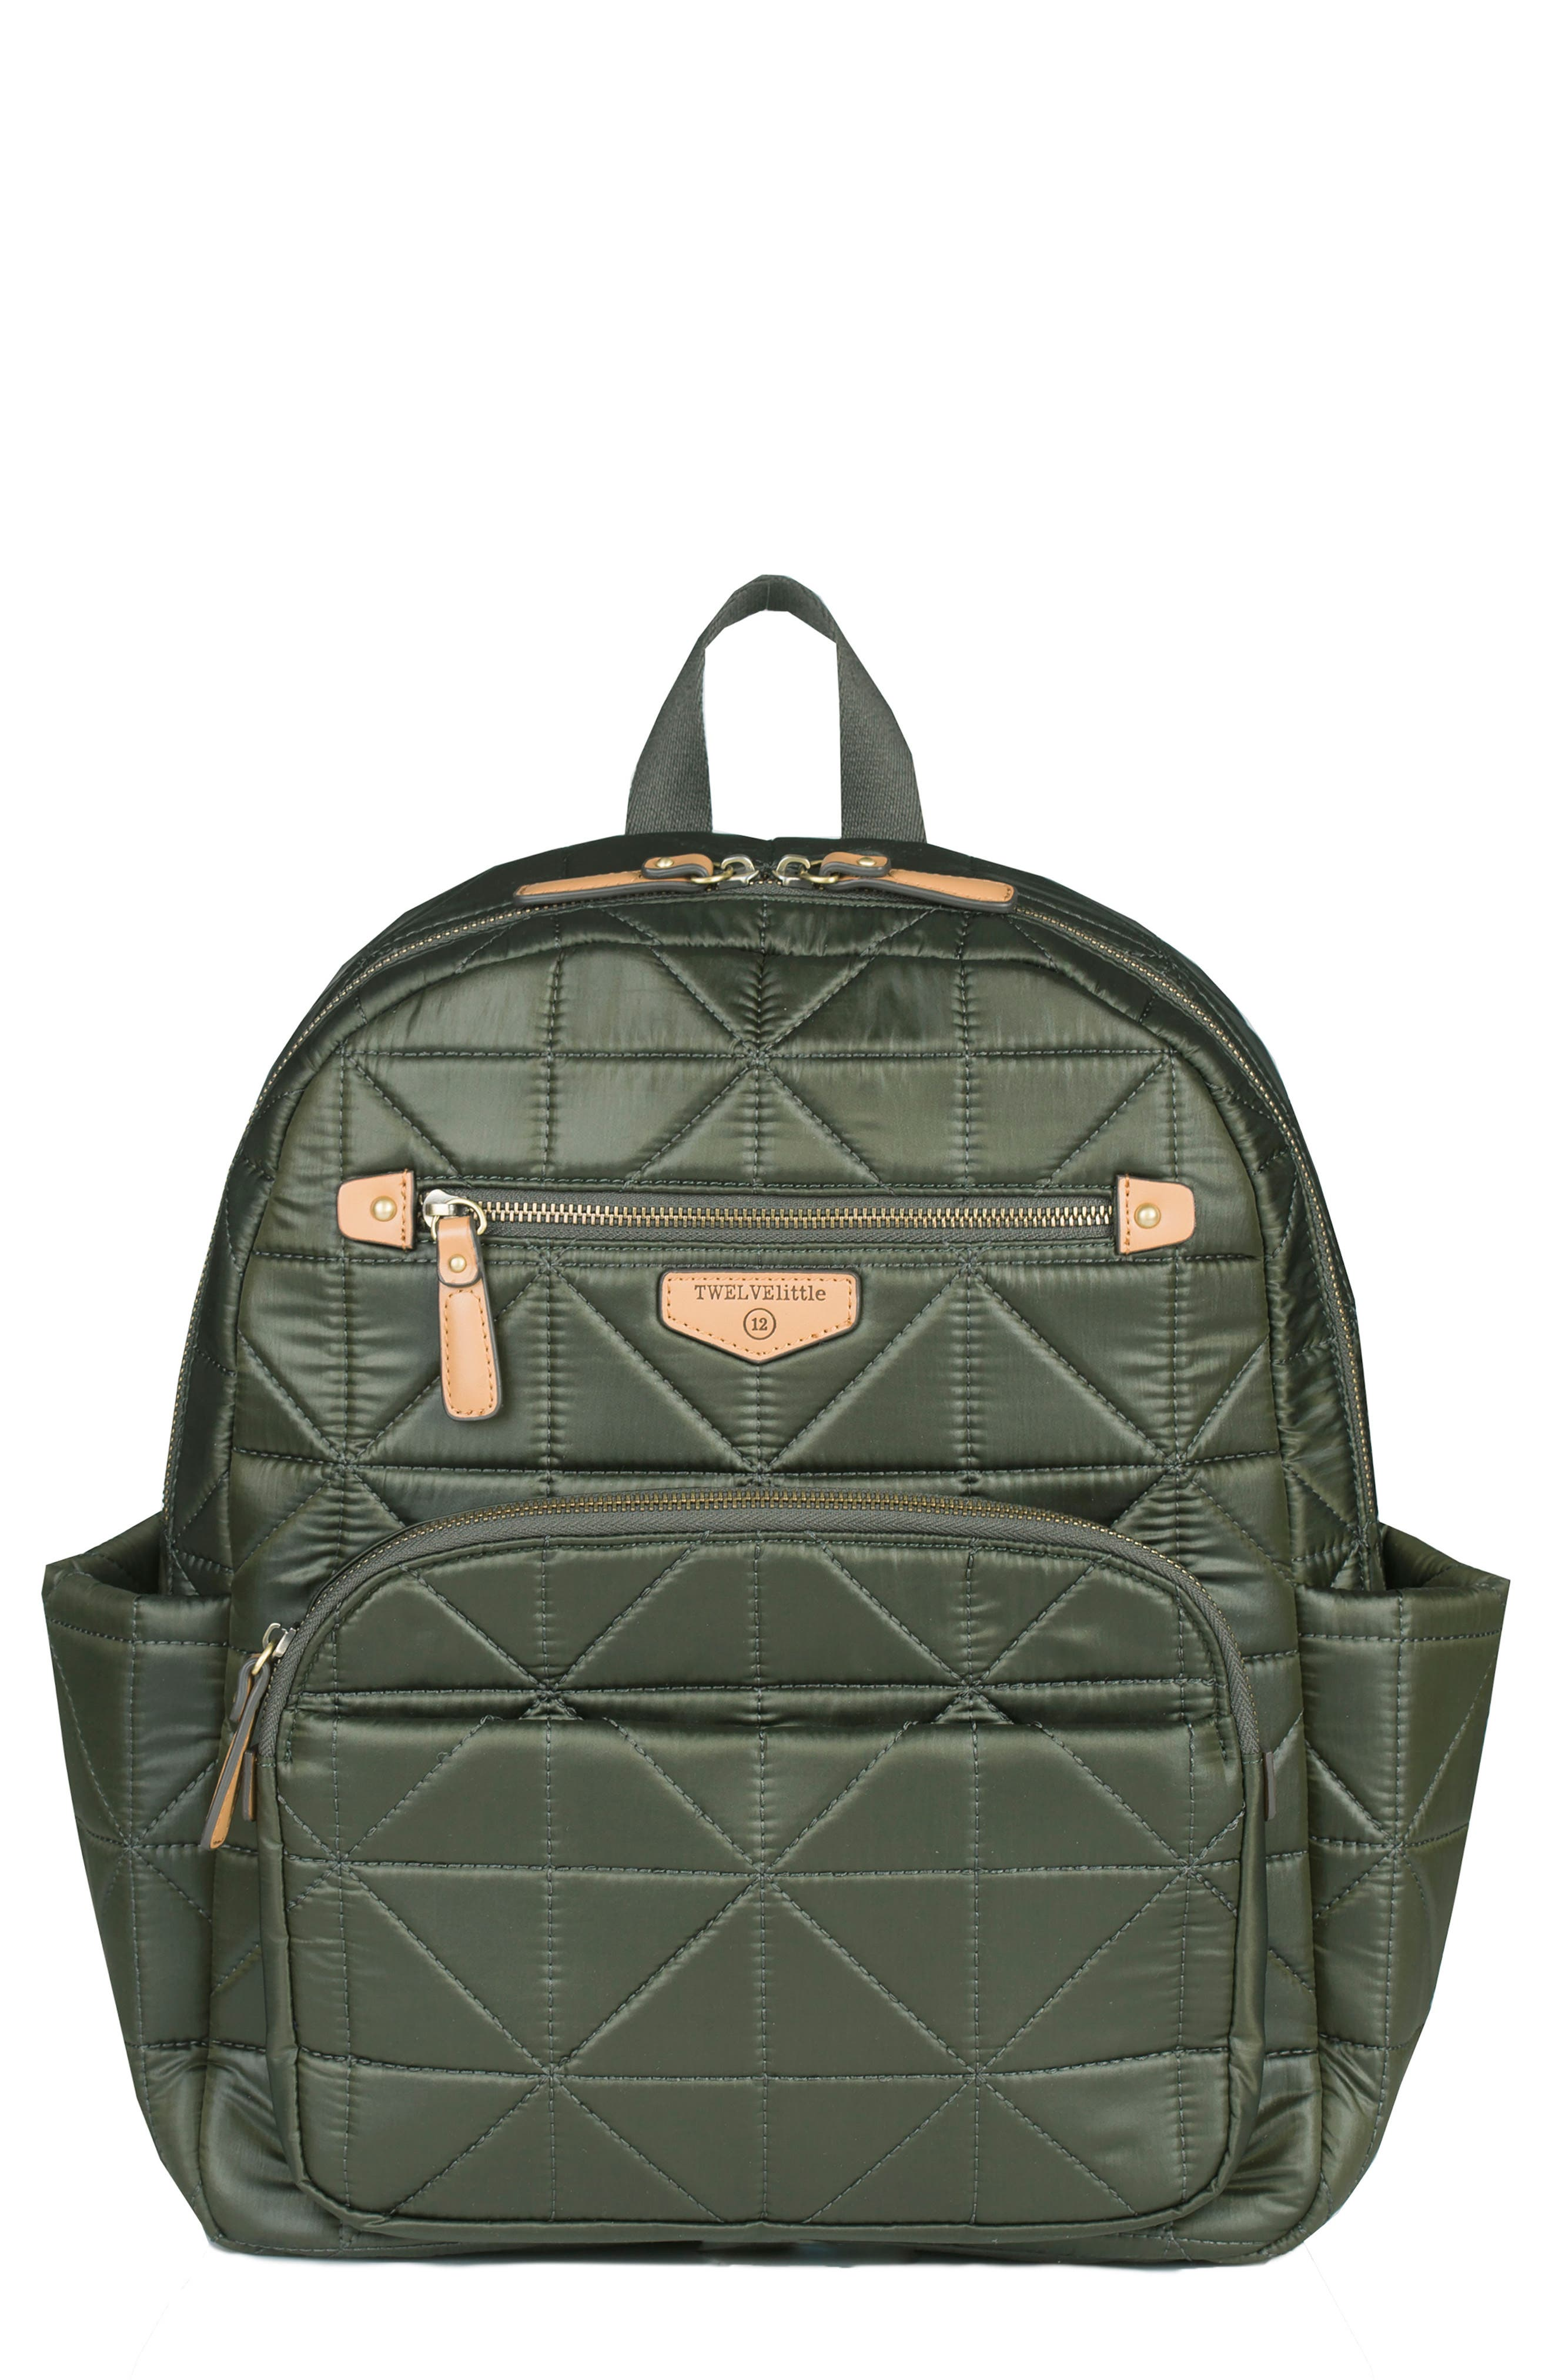 TWELVElittle 'Companion Backpack' Quilted Nylon Diaper Bag